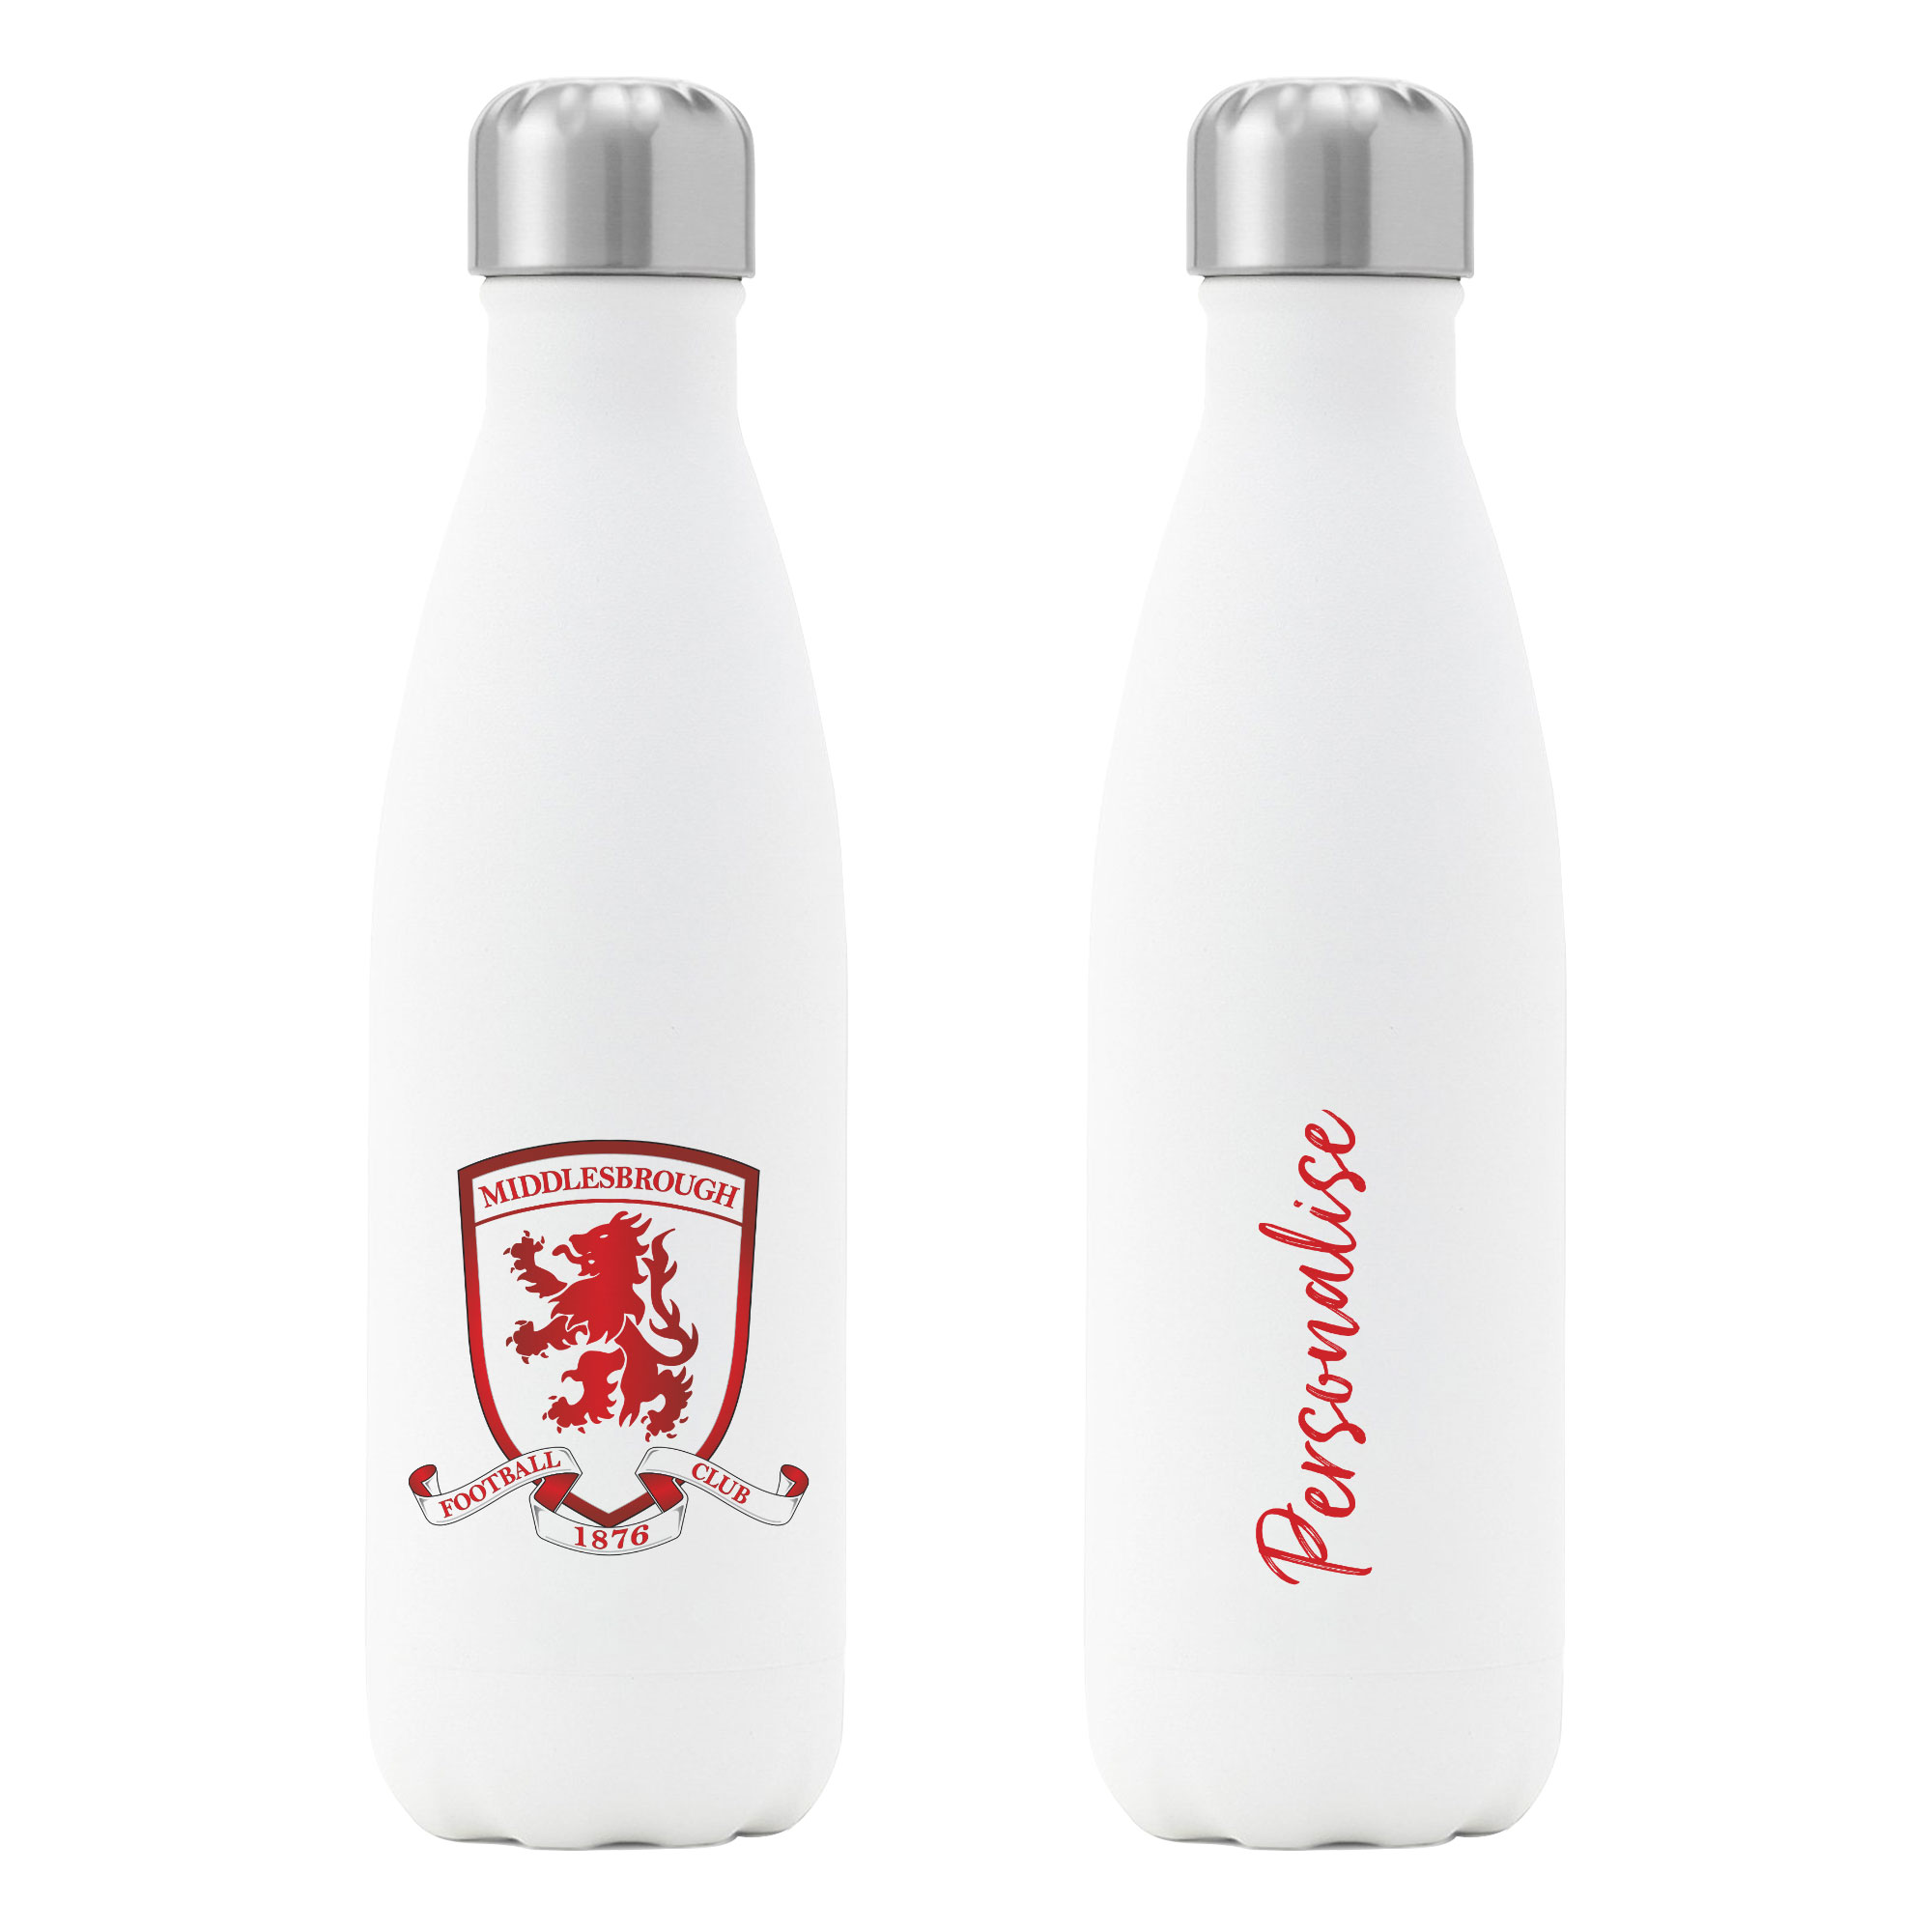 Middlesbrough FC Crest Insulated Water Bottle - White